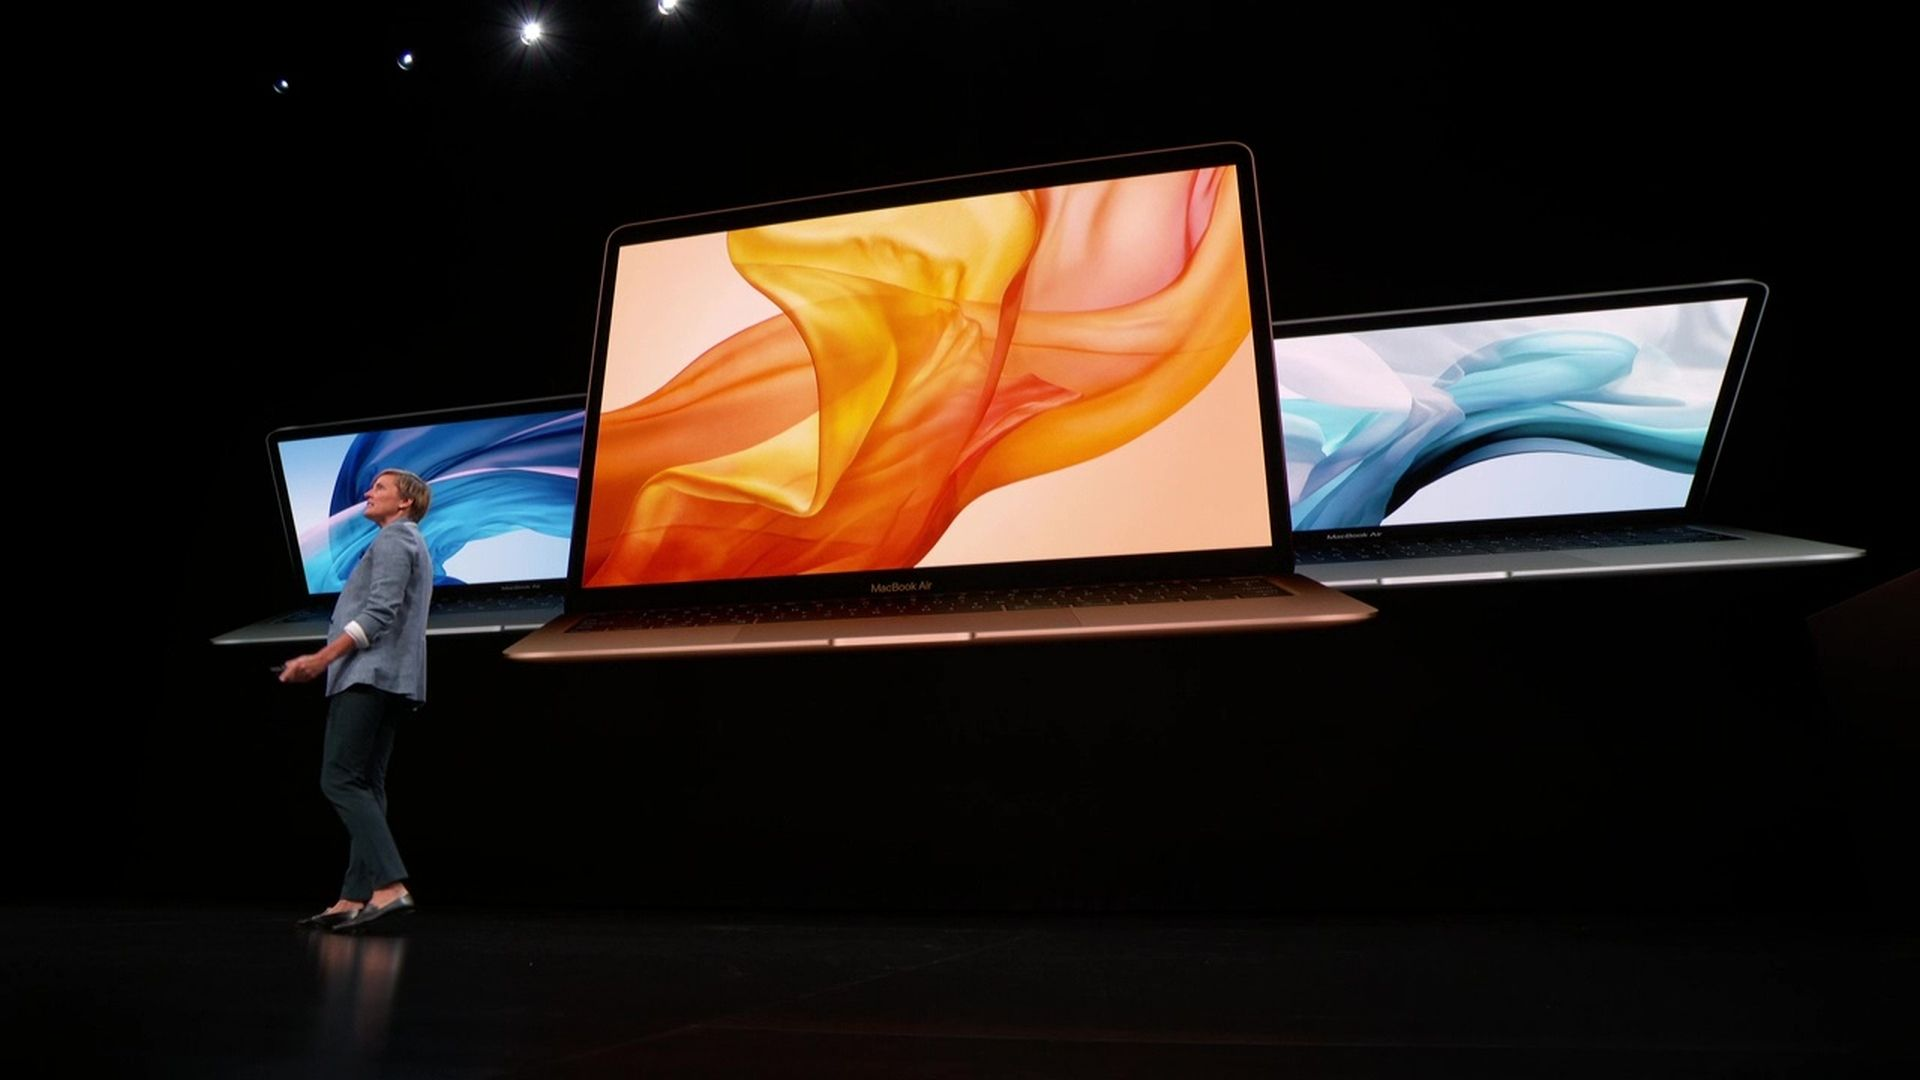 Apple pokazało na konferencji nowego MacBooka Air